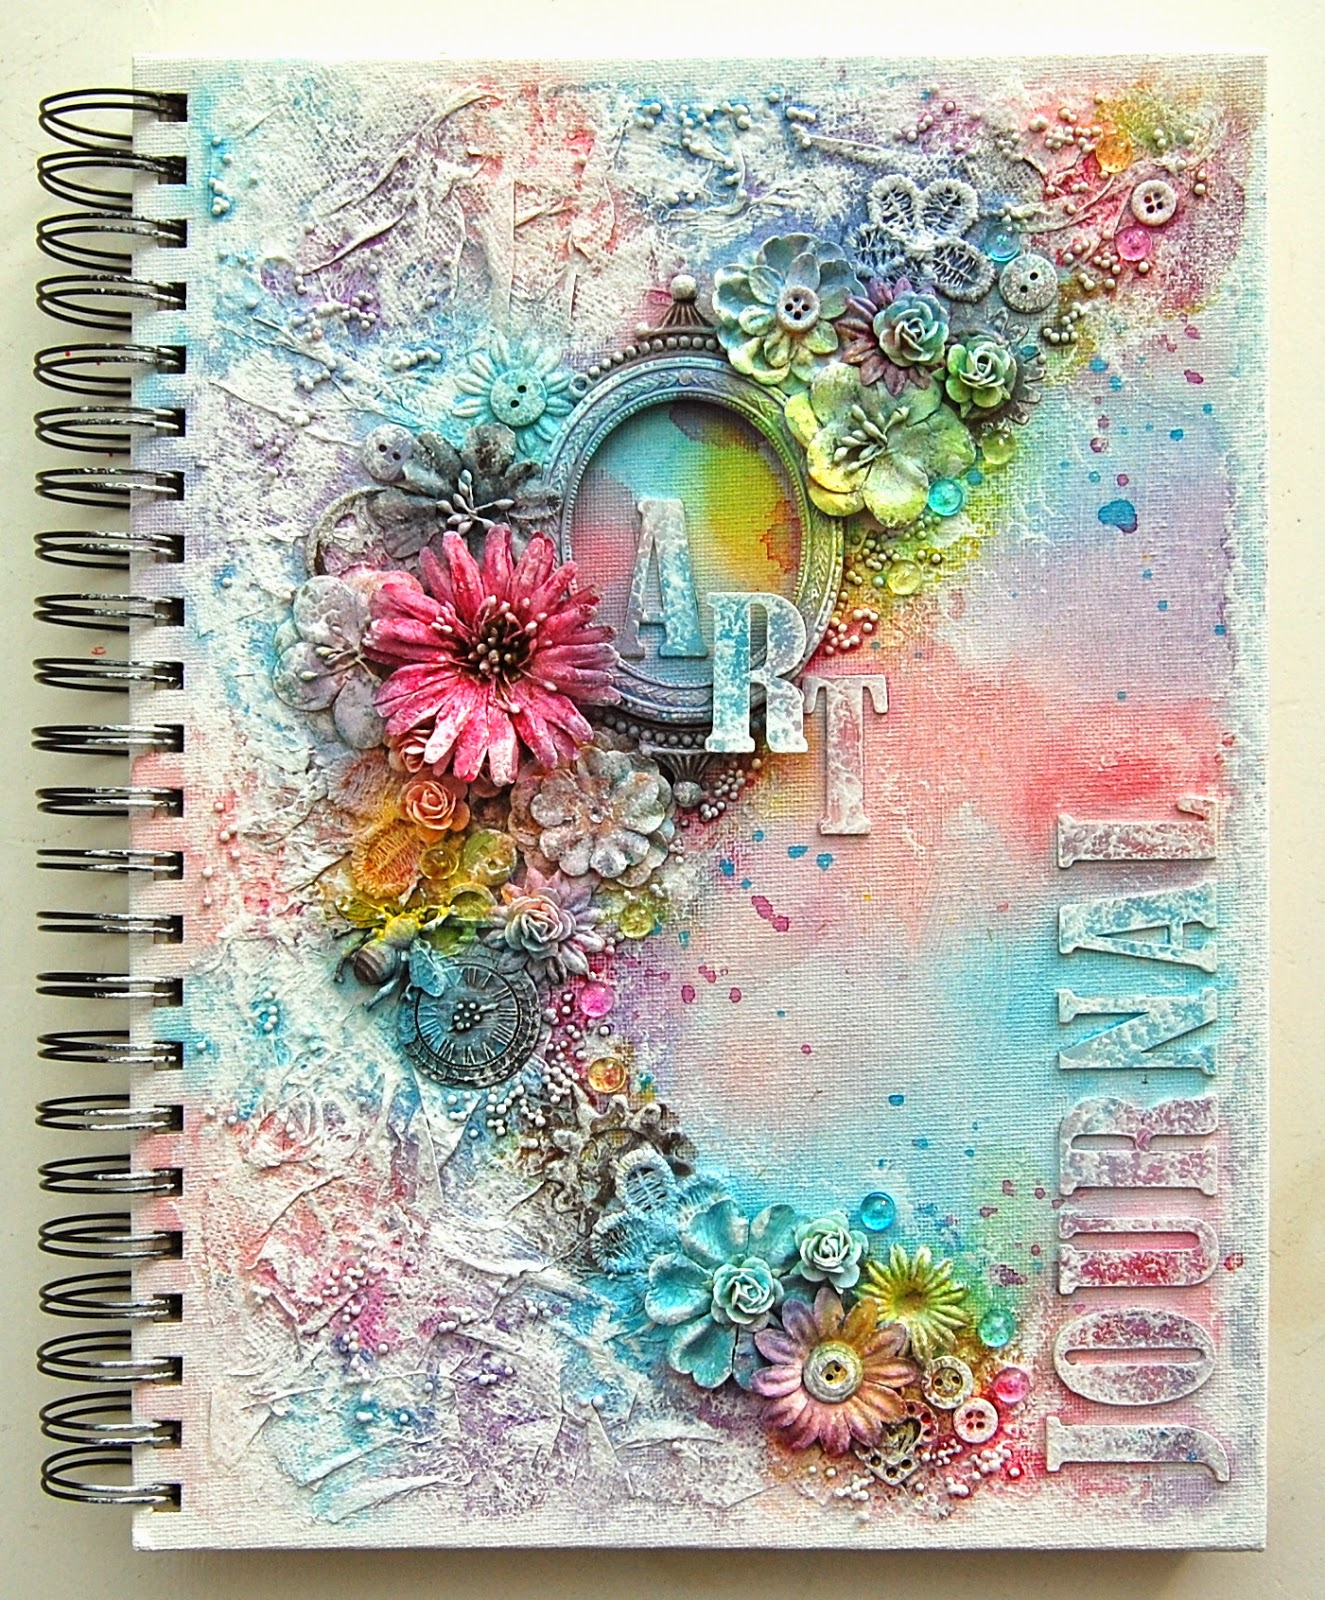 Book Cover Design Craft : Ingrid s place art journal shimmerz